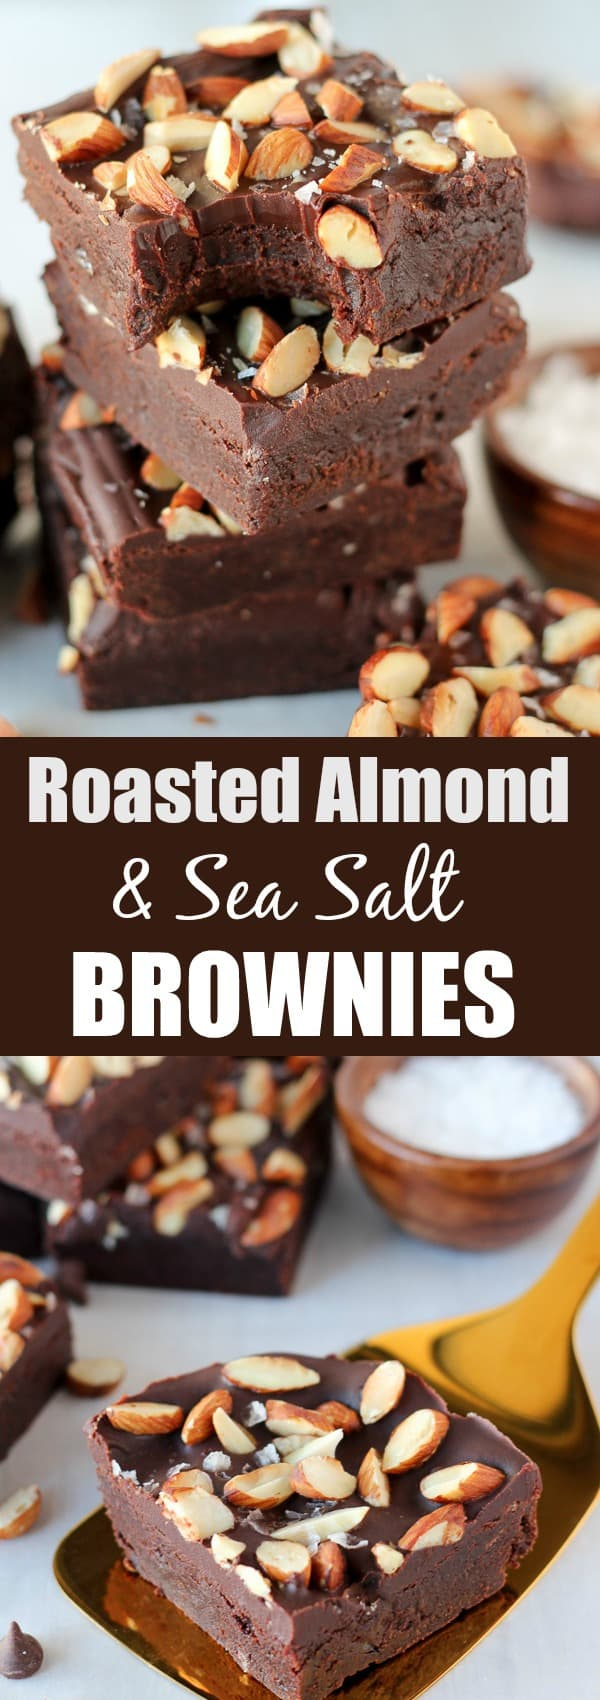 Roasted Almond and Sea Salt Brownies - Fudgy brownies topped with a creamy chocolate ganache and a generous sprinkling of roasted almonds and flaked sea salt. Sweet and salty perfection!